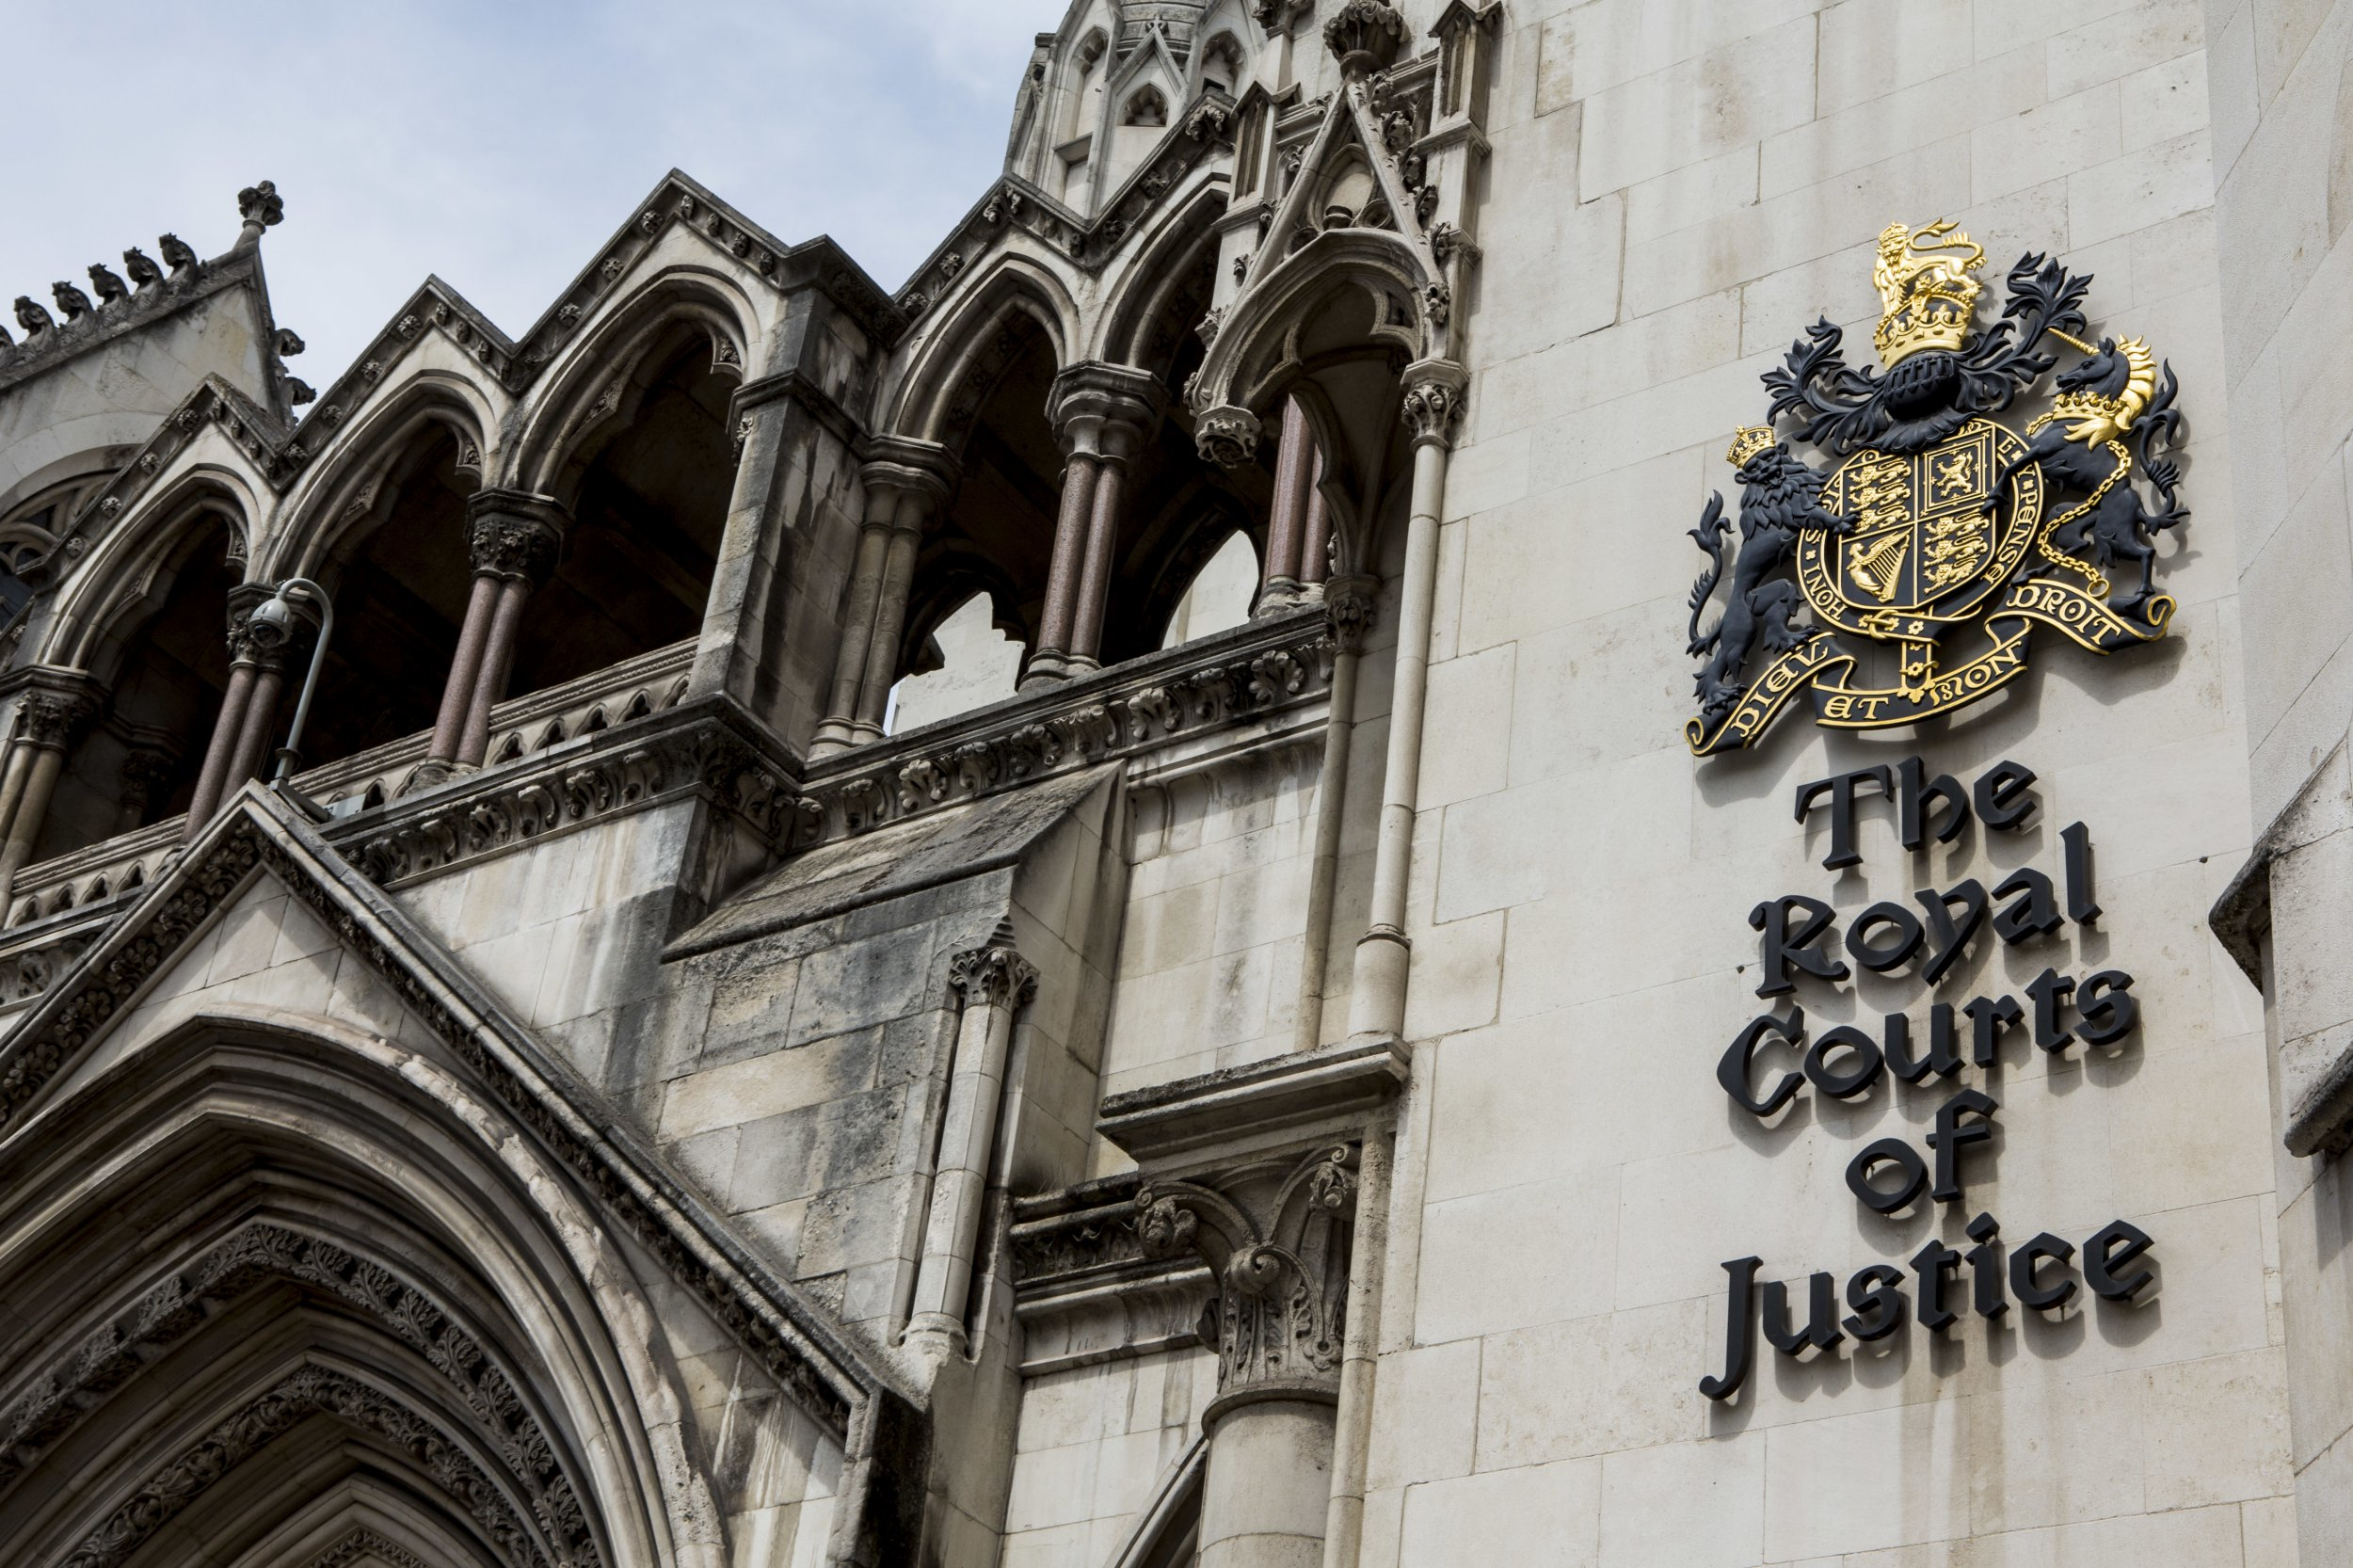 The sign outside The Royal Courts of Justice, commonly called the Law Courts, is a court building in London which houses both the High Court and Court of Appeal of England and Wales. London, UK. (Photo by In Pictures Ltd./Corbis via Getty Images)